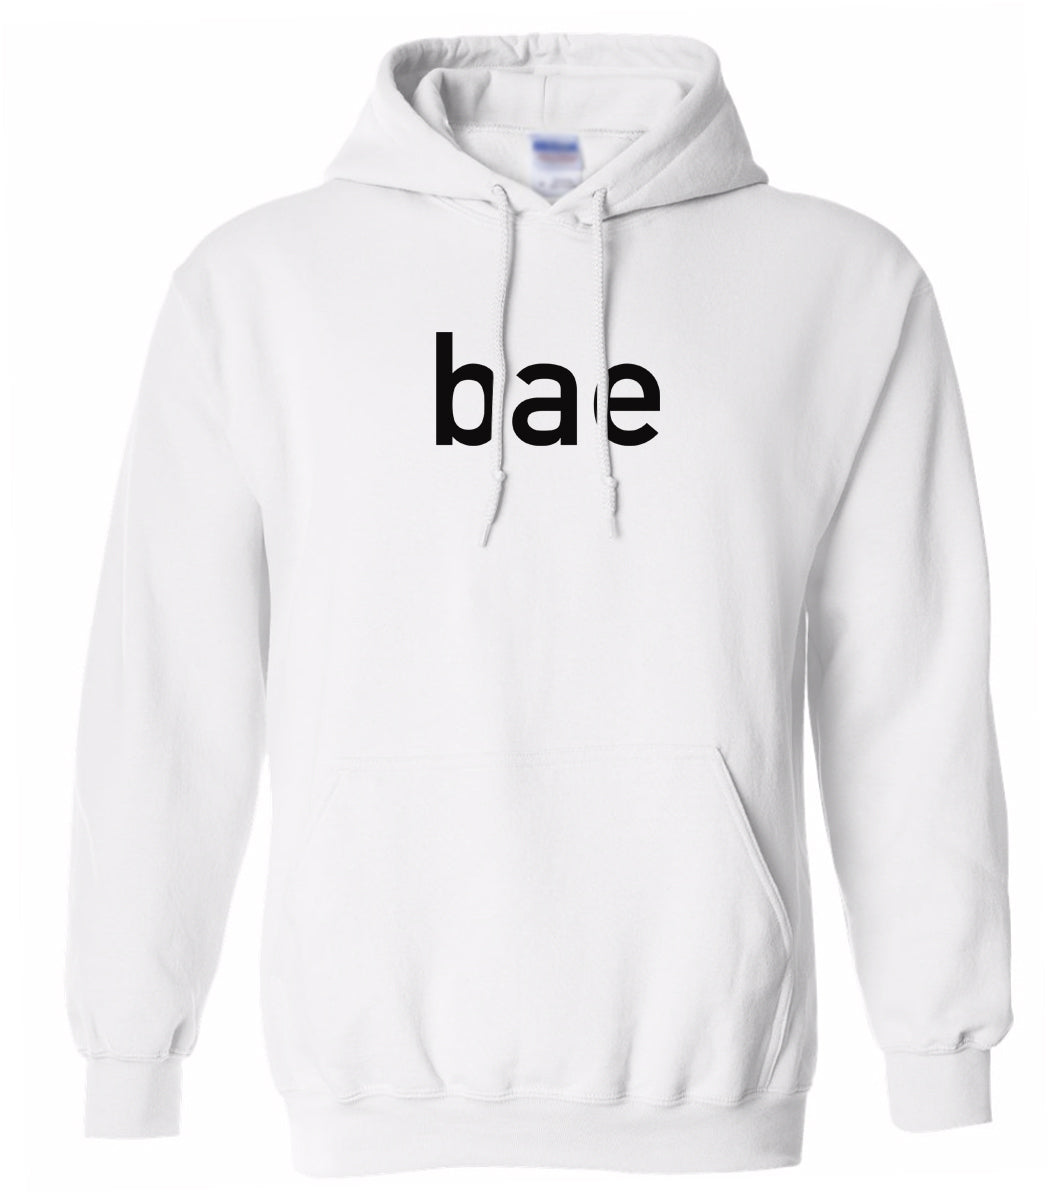 white BAE hooded sweatshirt for women